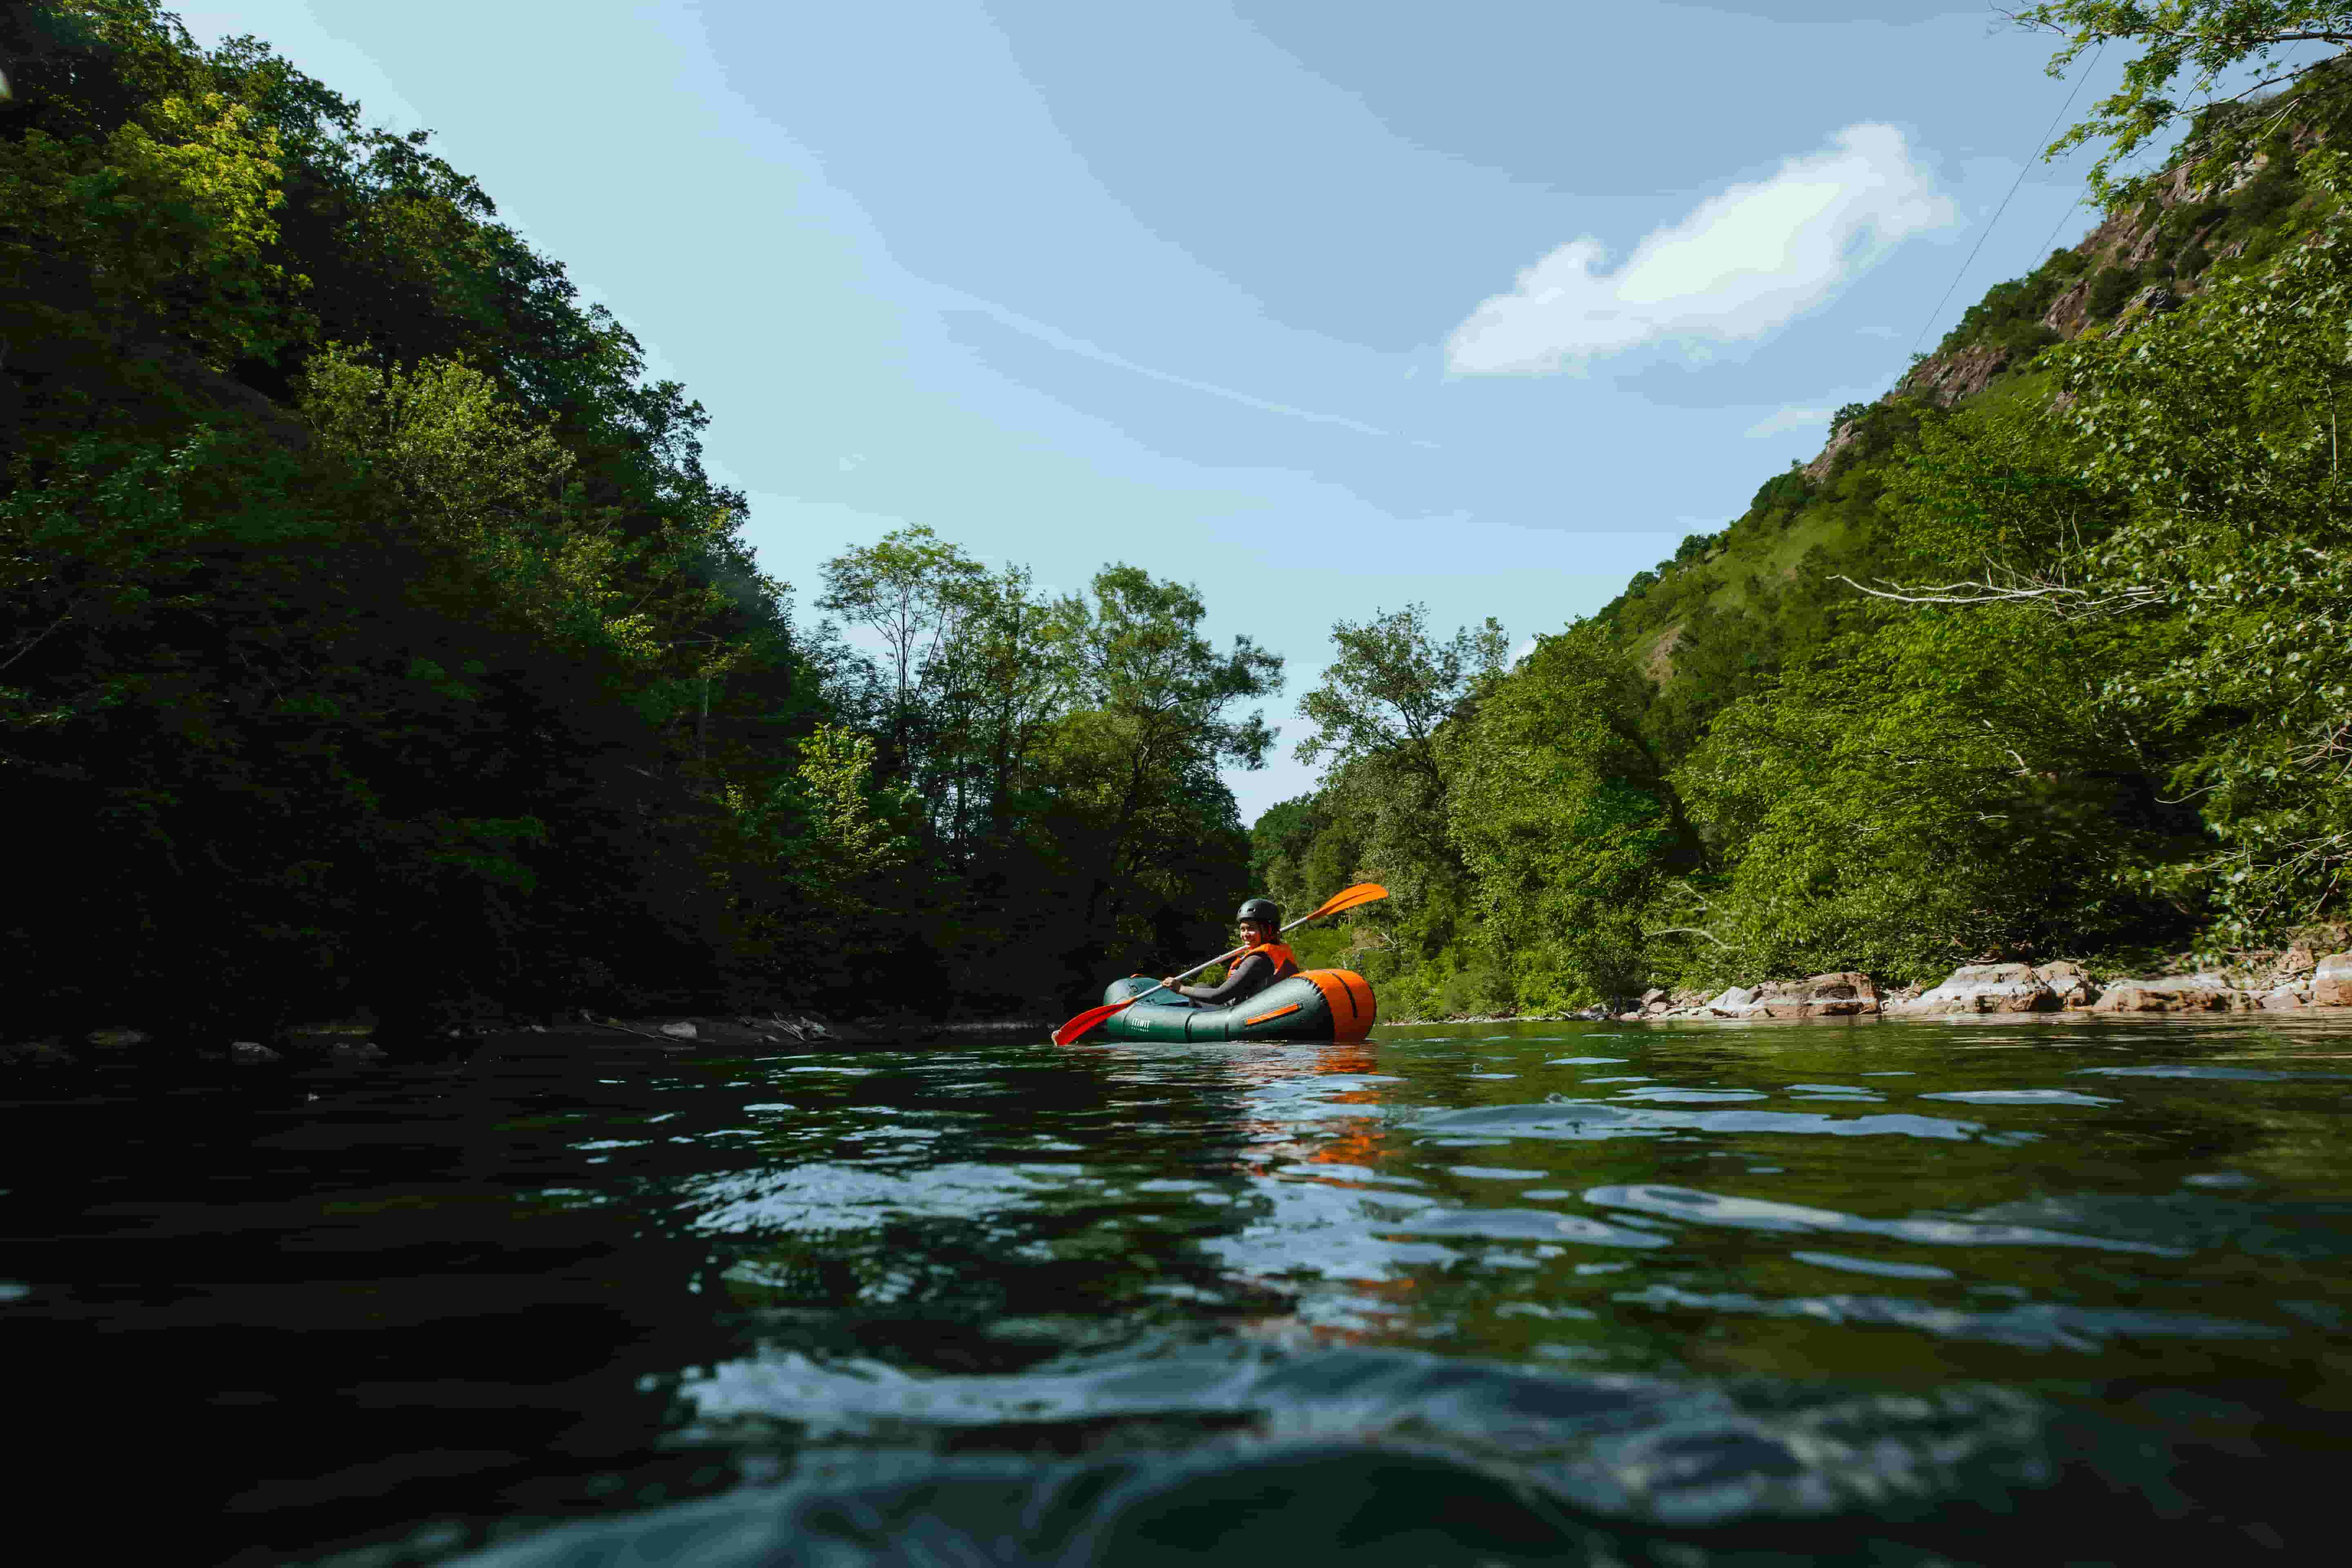 Top 15 Exciting Water Sports Activities To Try In Your Next Vacation!